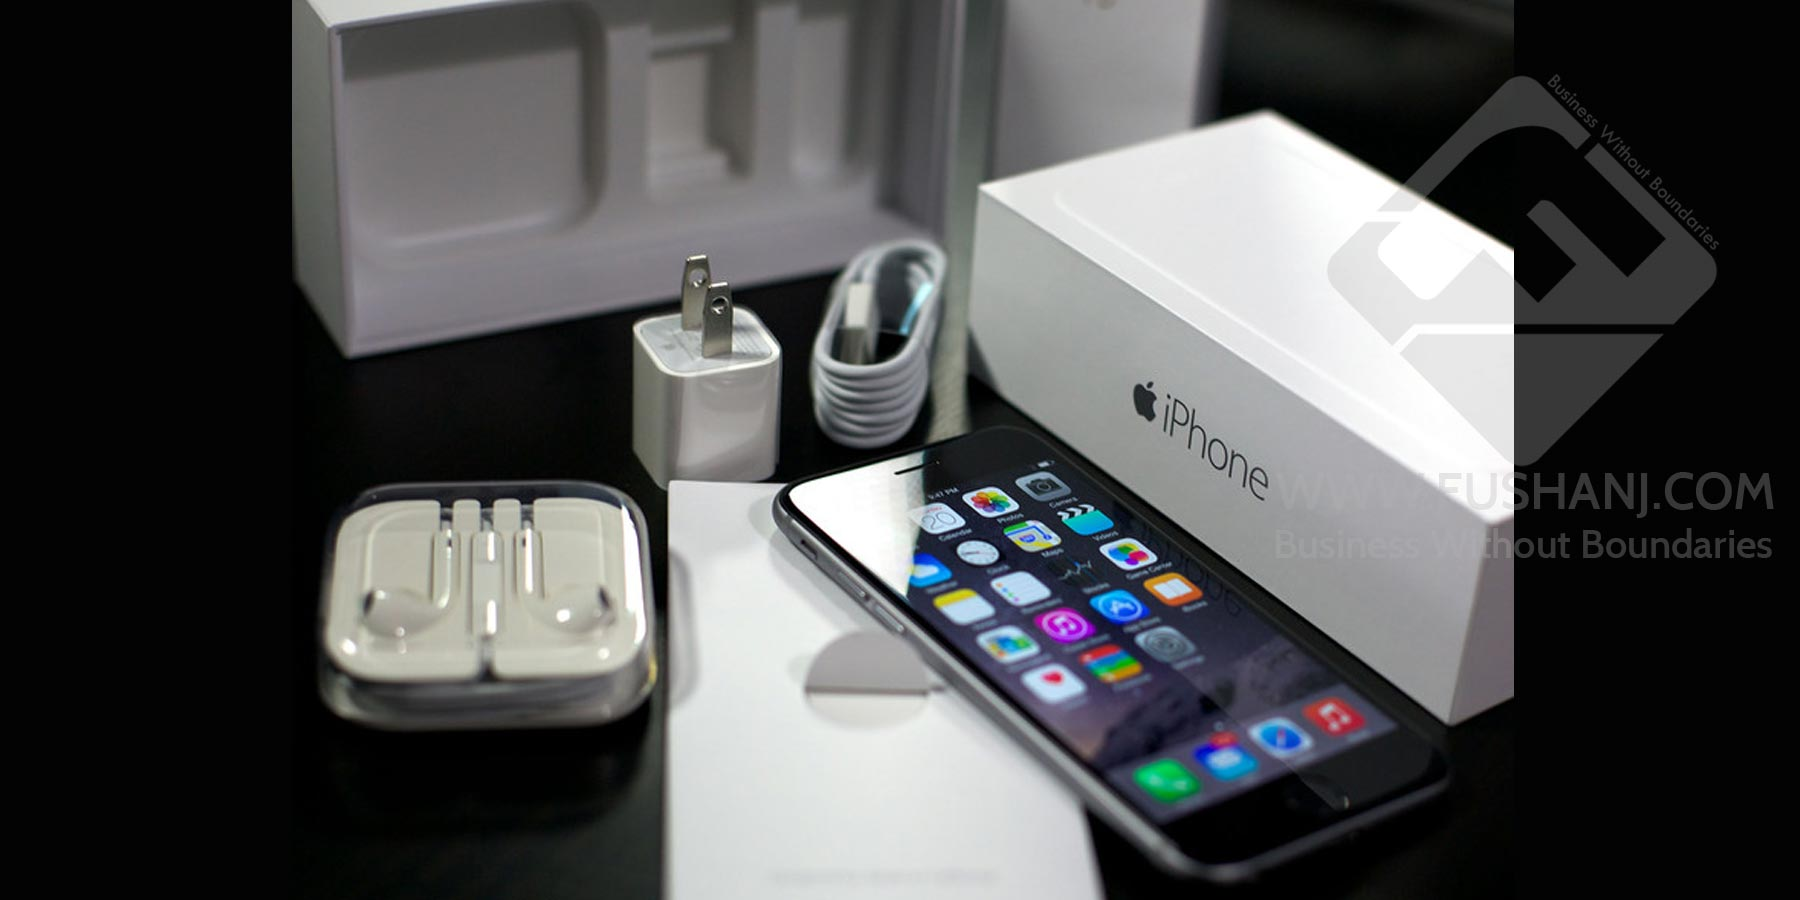 apple-iphone-6-price-dubai-online-display-camera-unboxing-battery